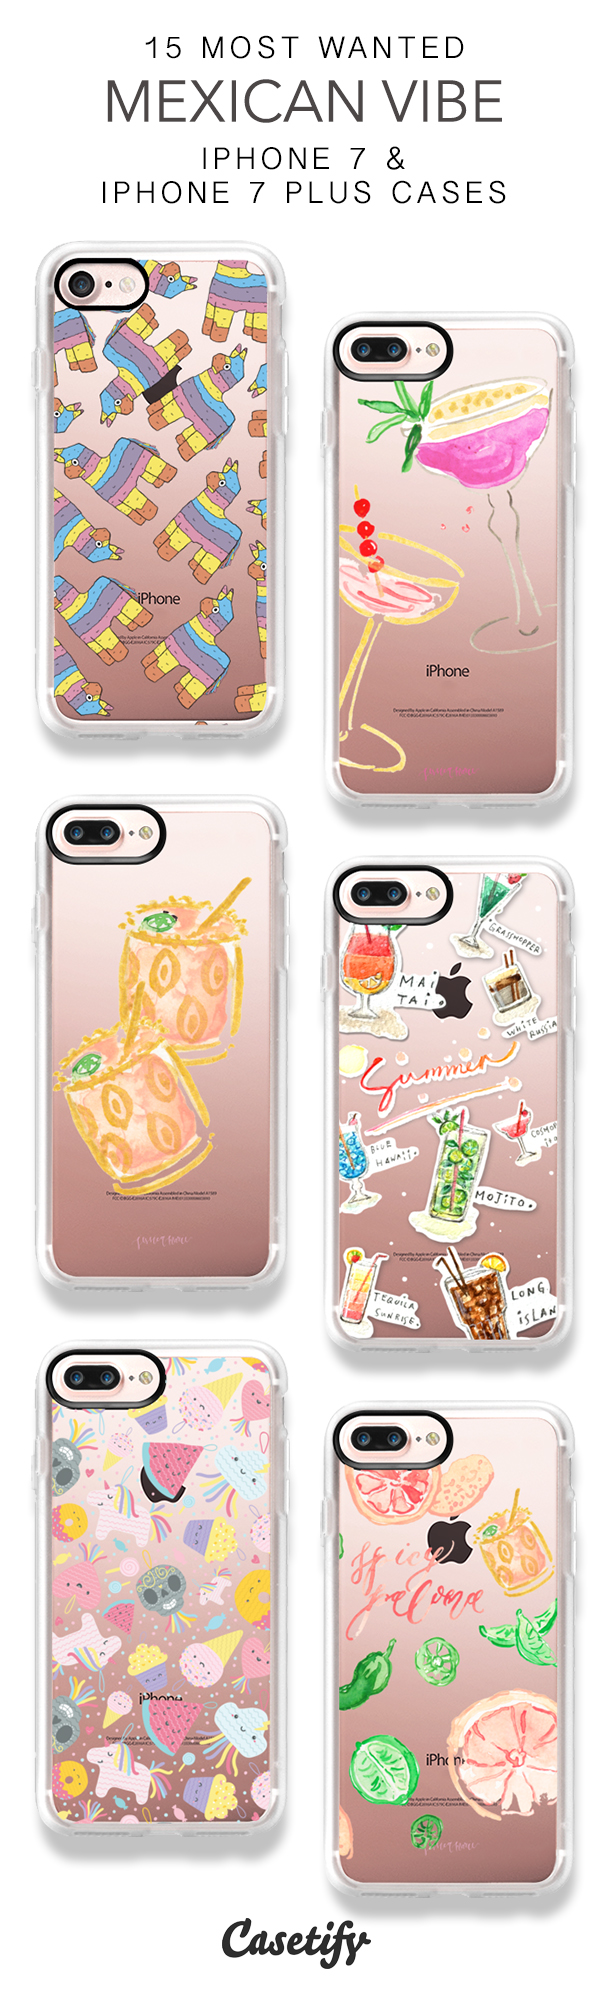 15 Most Wanted Mexican Vibe iPhone 7 Cases & iPhone 7 Plus Cases here > https://www.casetify.com/collections/top_100_designs#/?vc=kkvop7IUFj